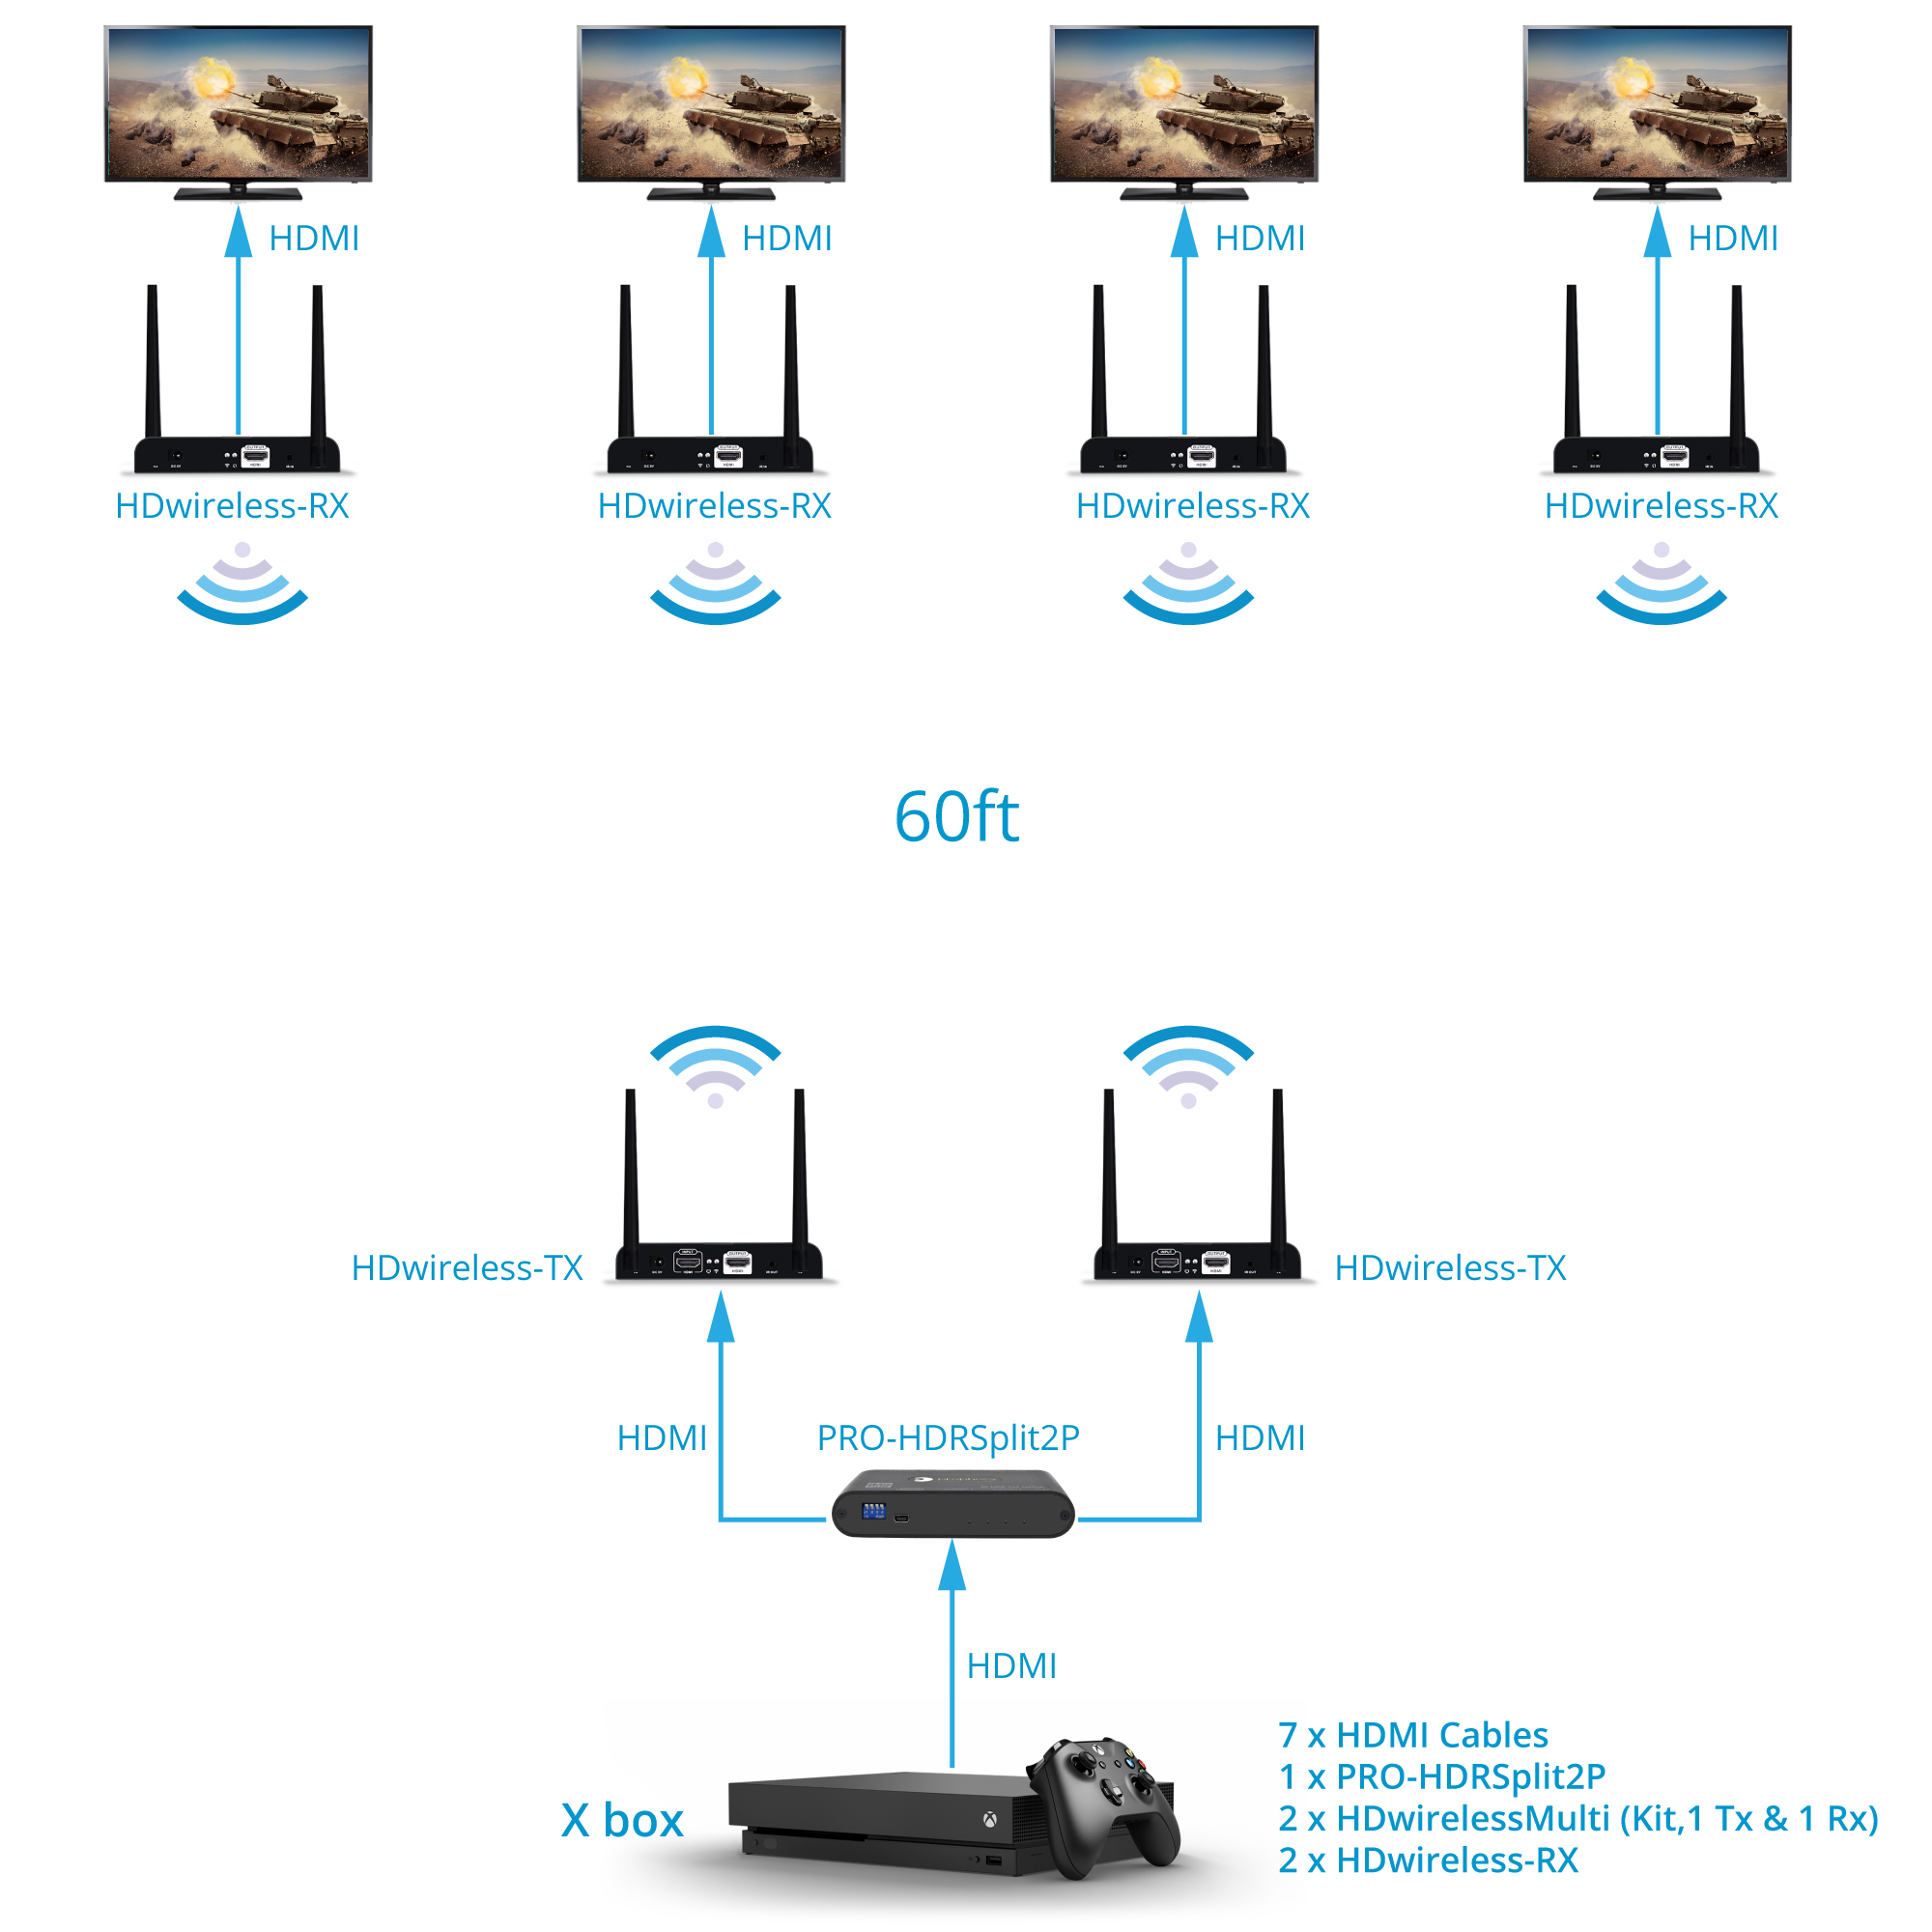 1x4 Wireless HDMI Extender Configuration